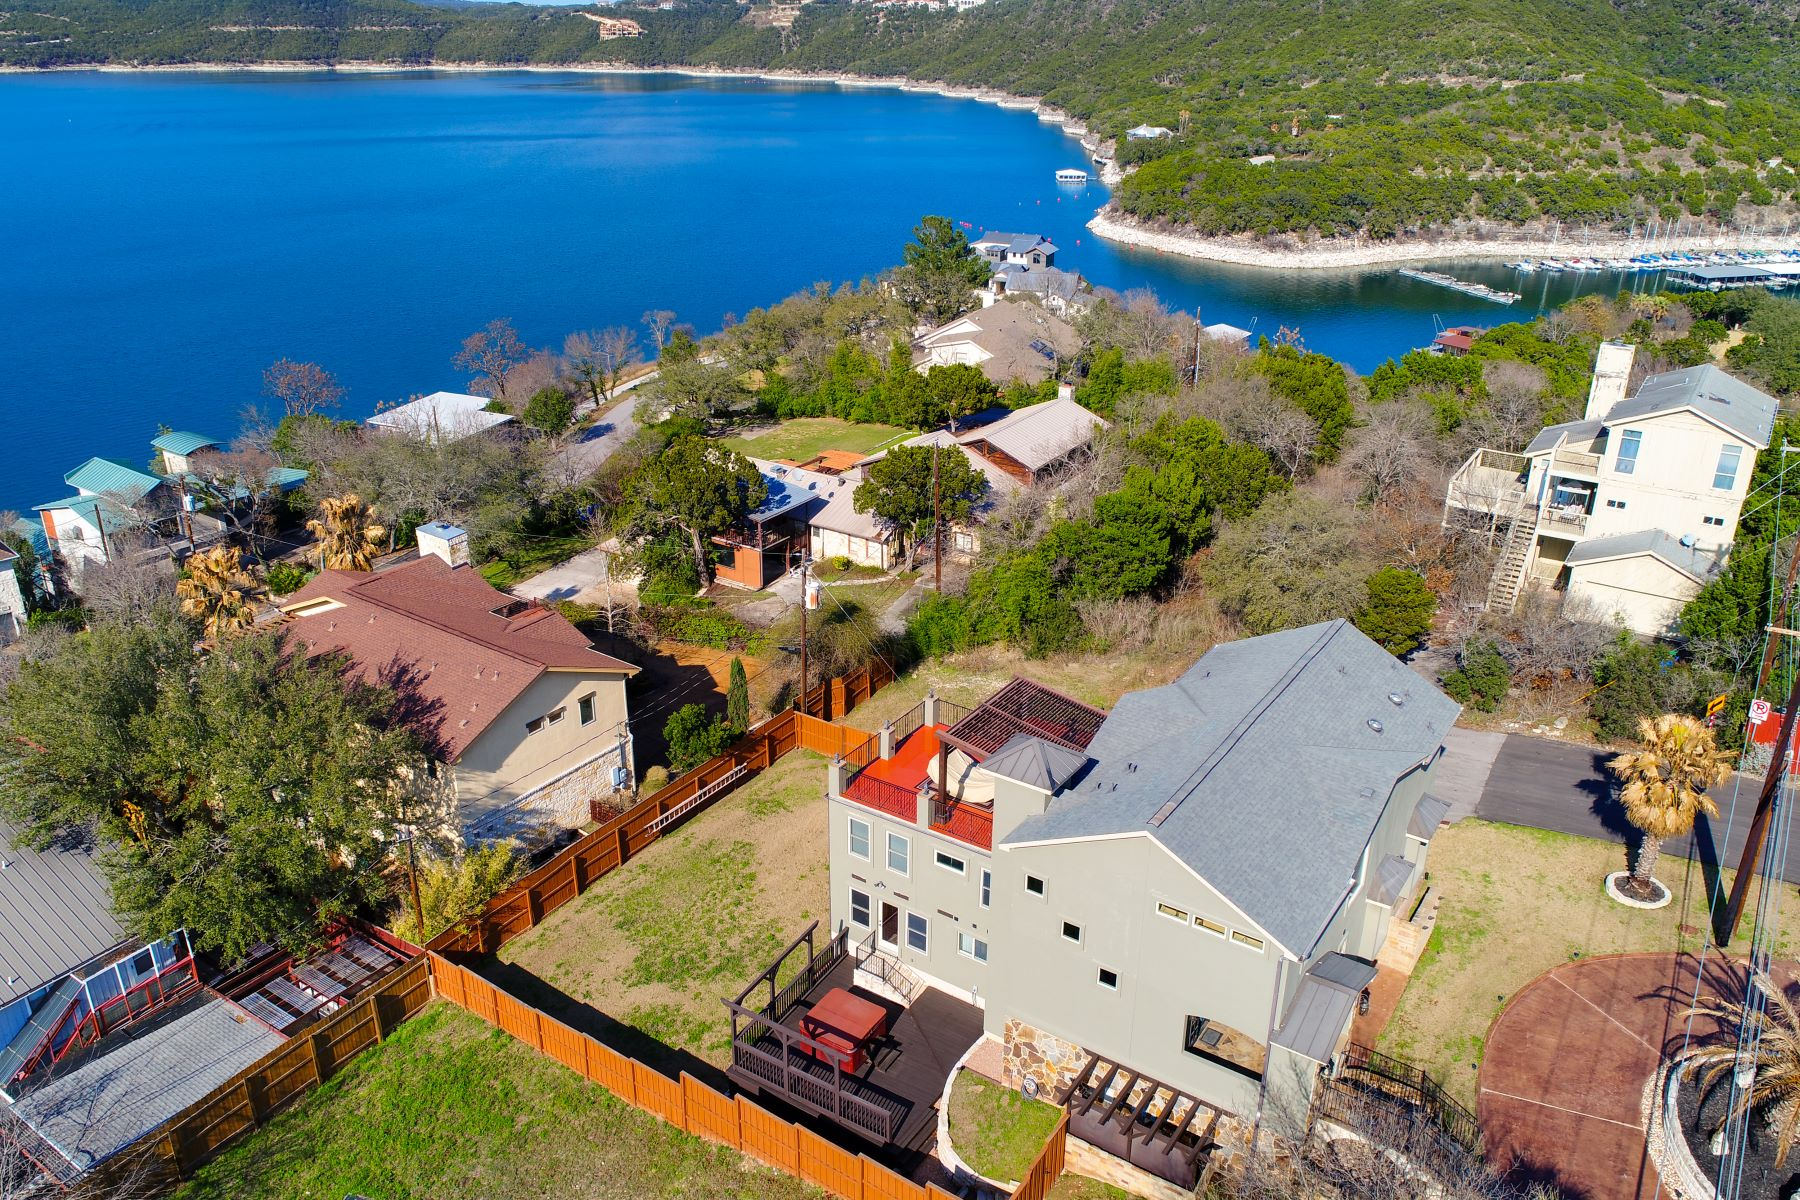 Single Family Home for Sale at Beautiful Lake Travis Home with Incredible Views 12800 Thomas Street Austin, Texas 78732 United States